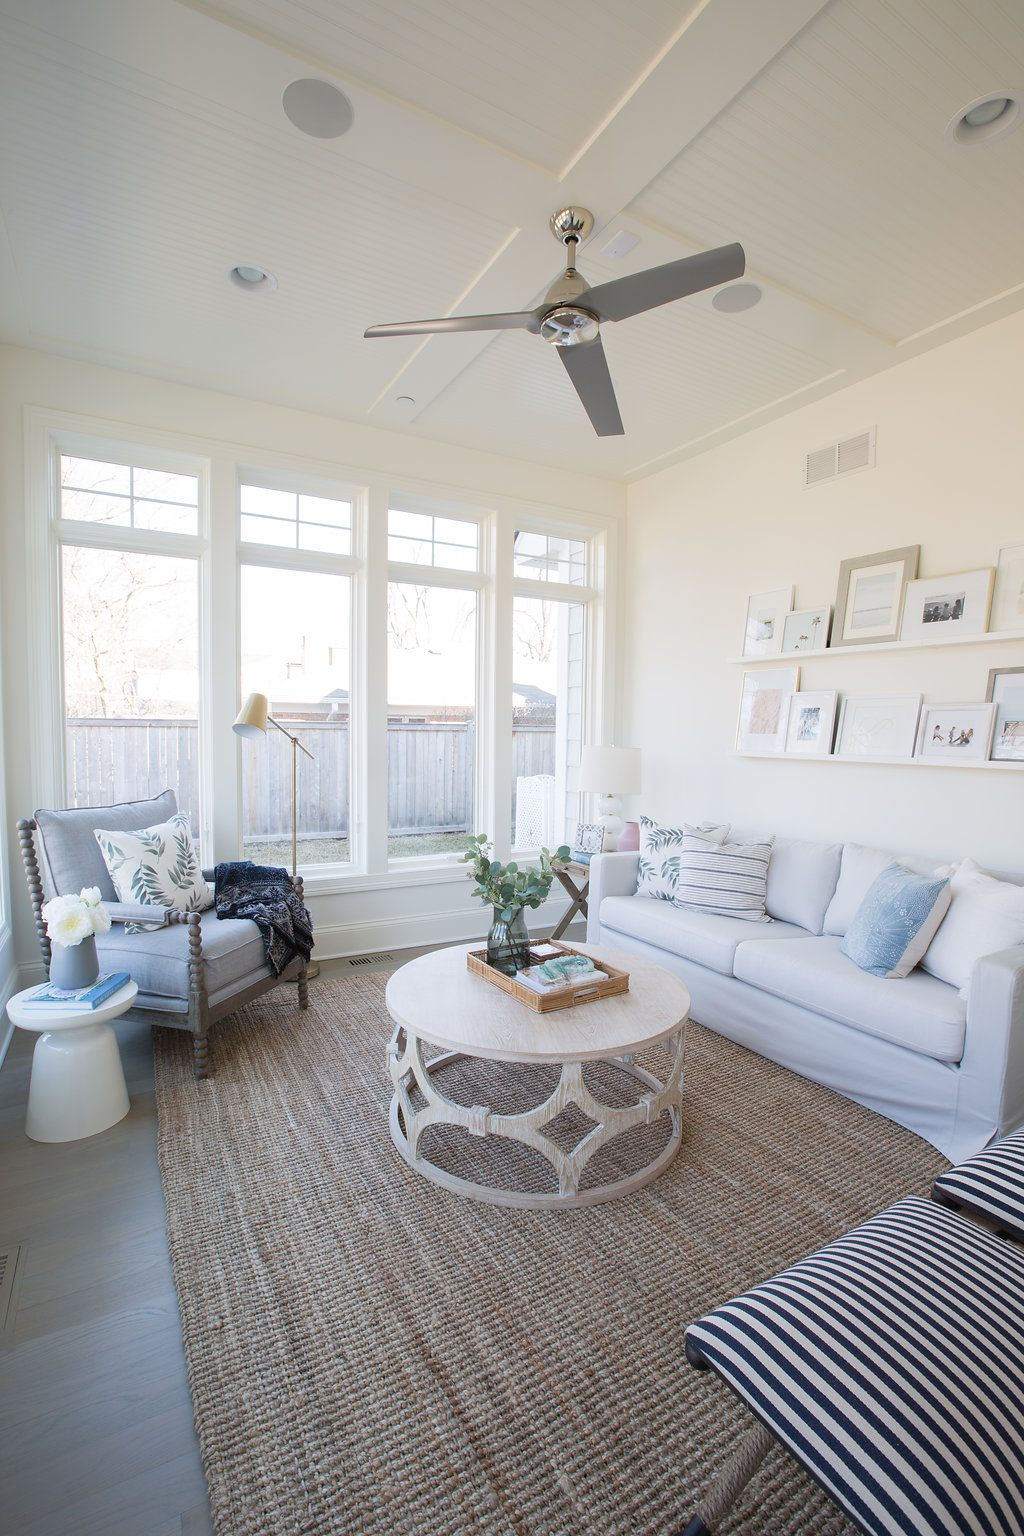 Cedar Lane Paint Colors In 2020 With Images Sunroom Decorating Sunroom Designs Farm House Living Room